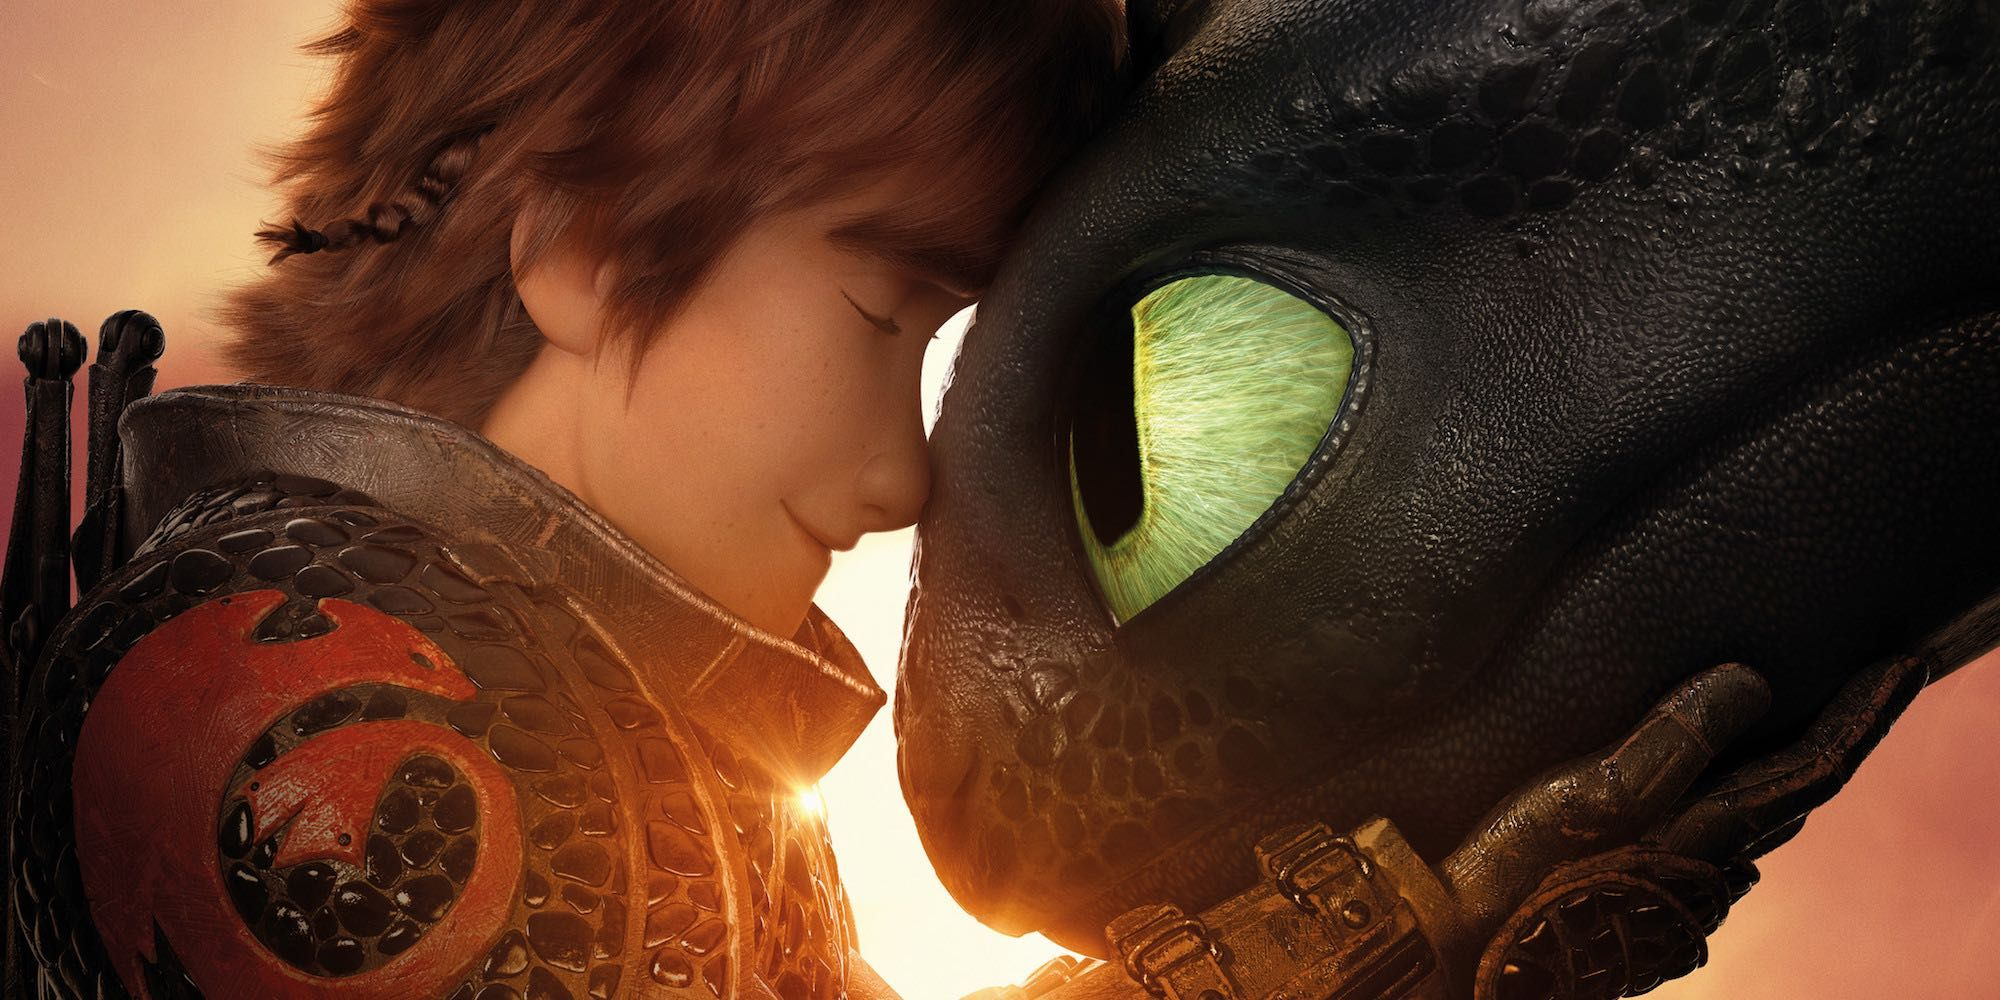 Does How To Train Your Dragon 3 Have A Post-Credits Scene? - photo#35